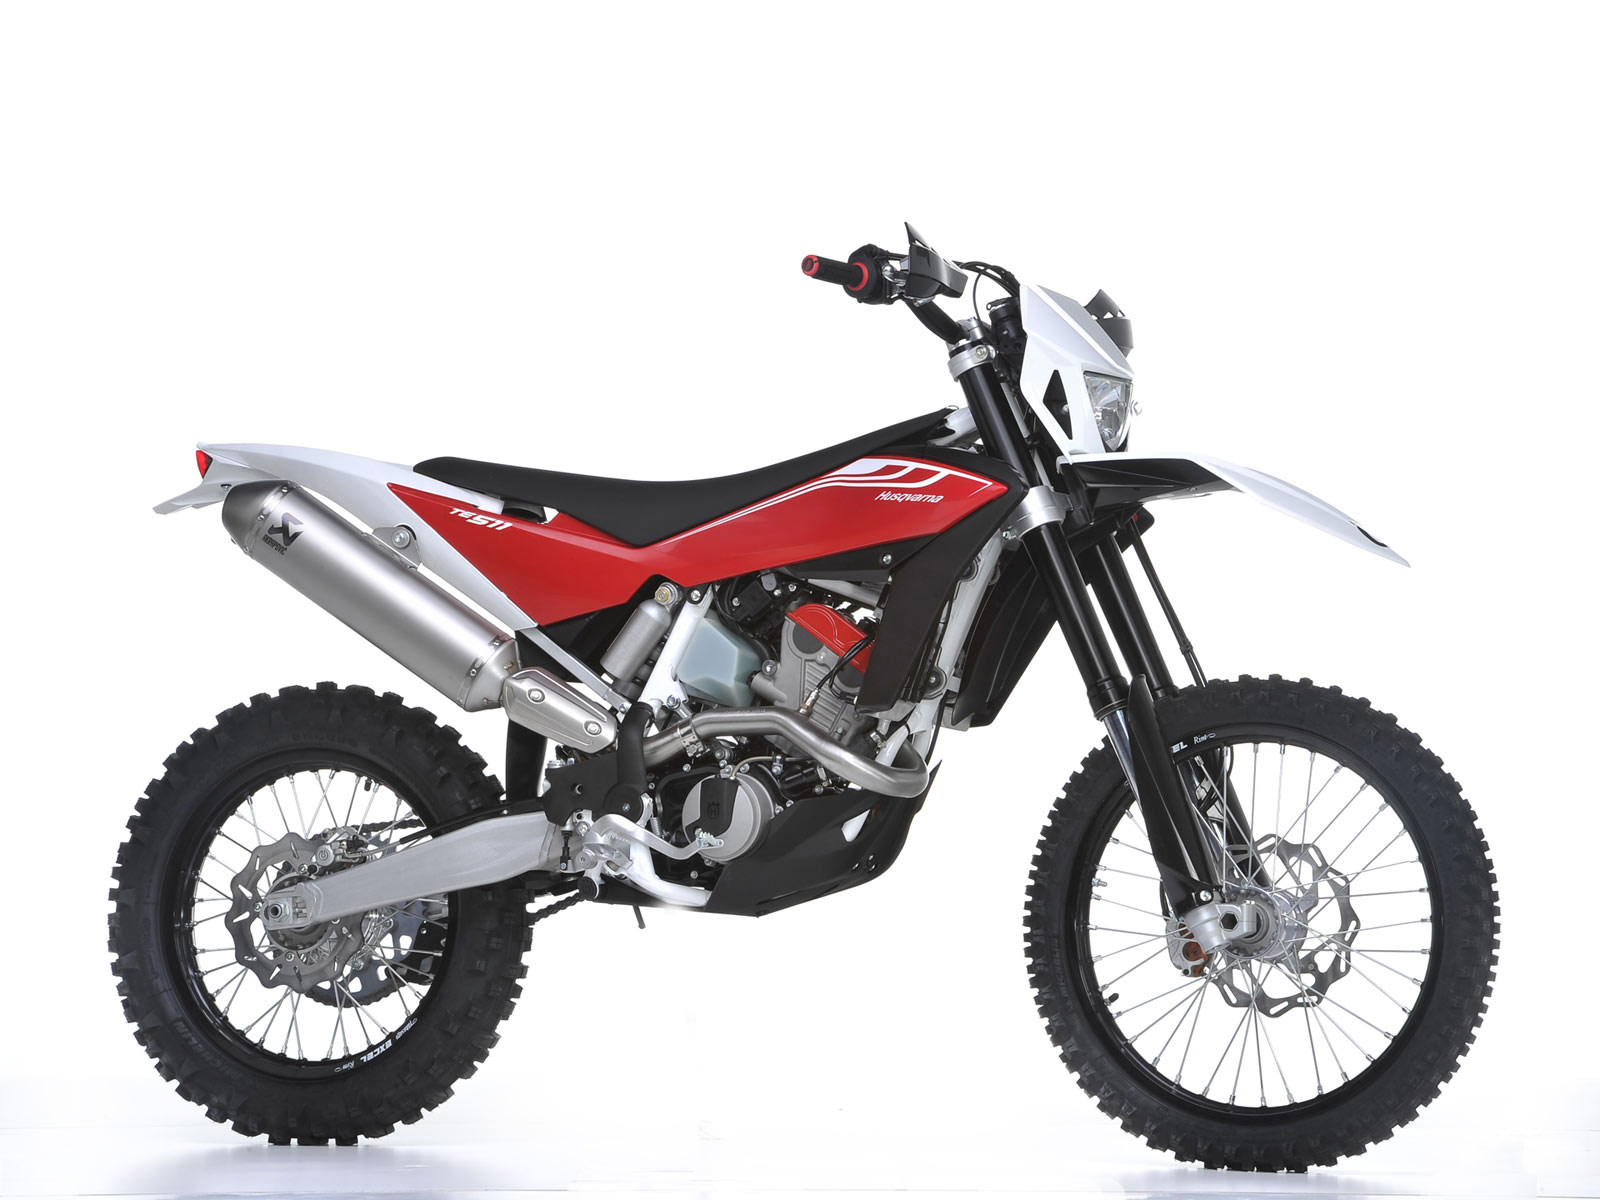 Husqvarna te511 photo - 2